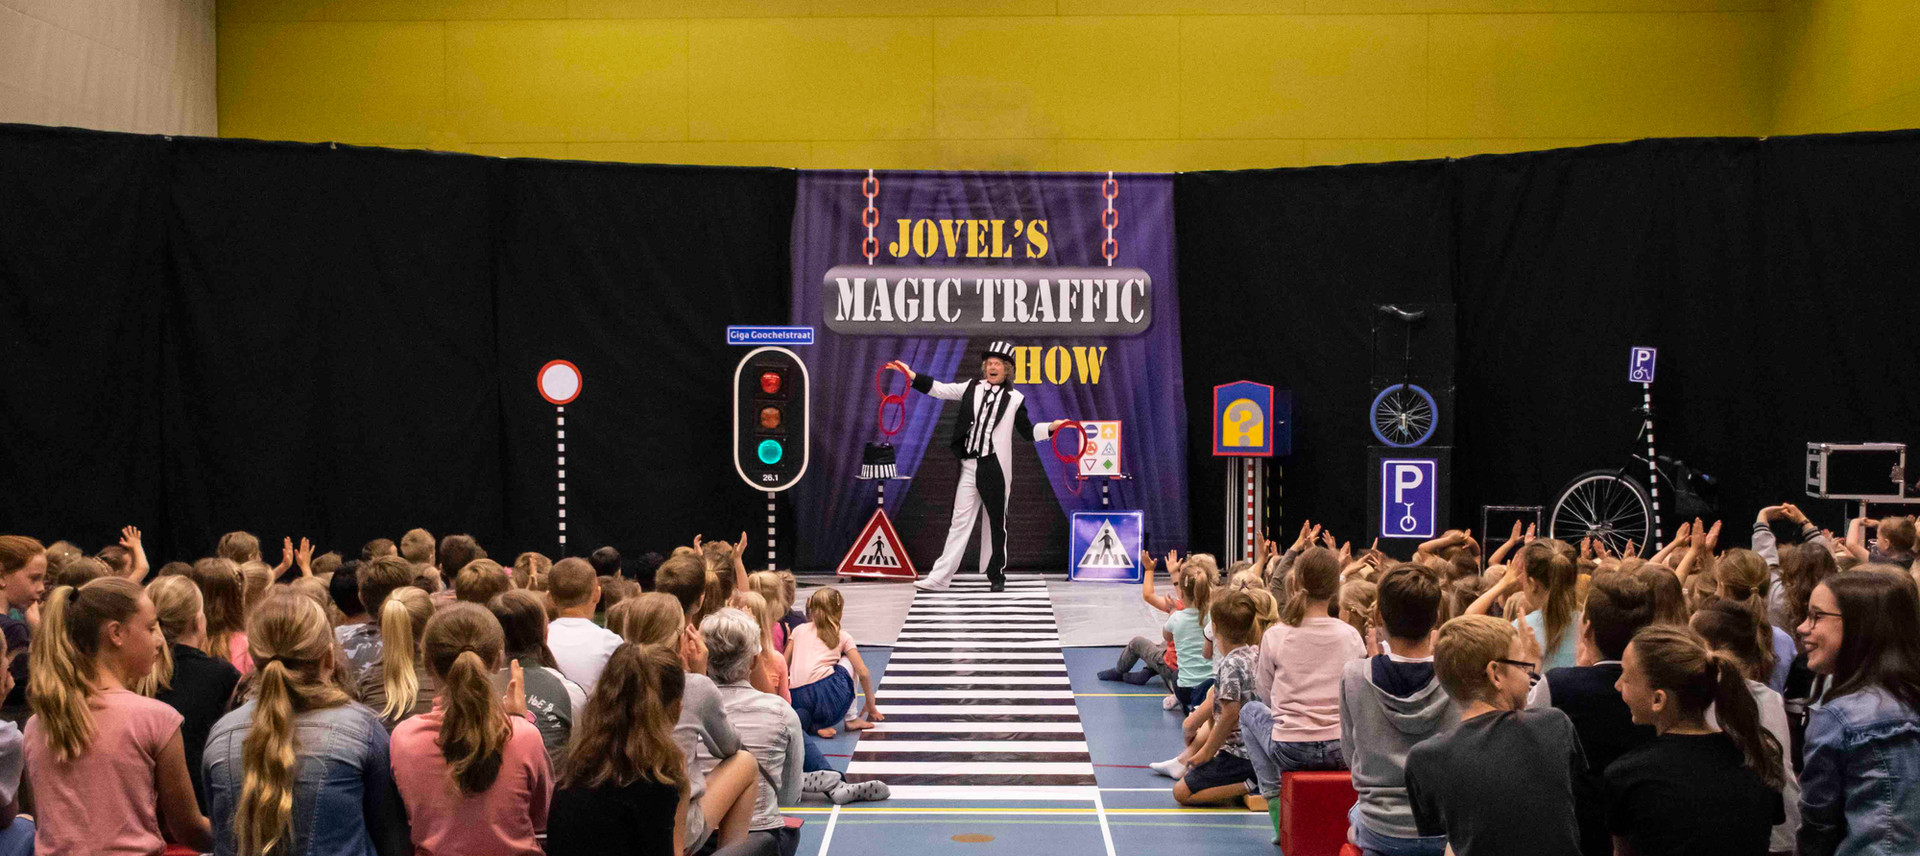 Magic Traffic Show decor theater show vo